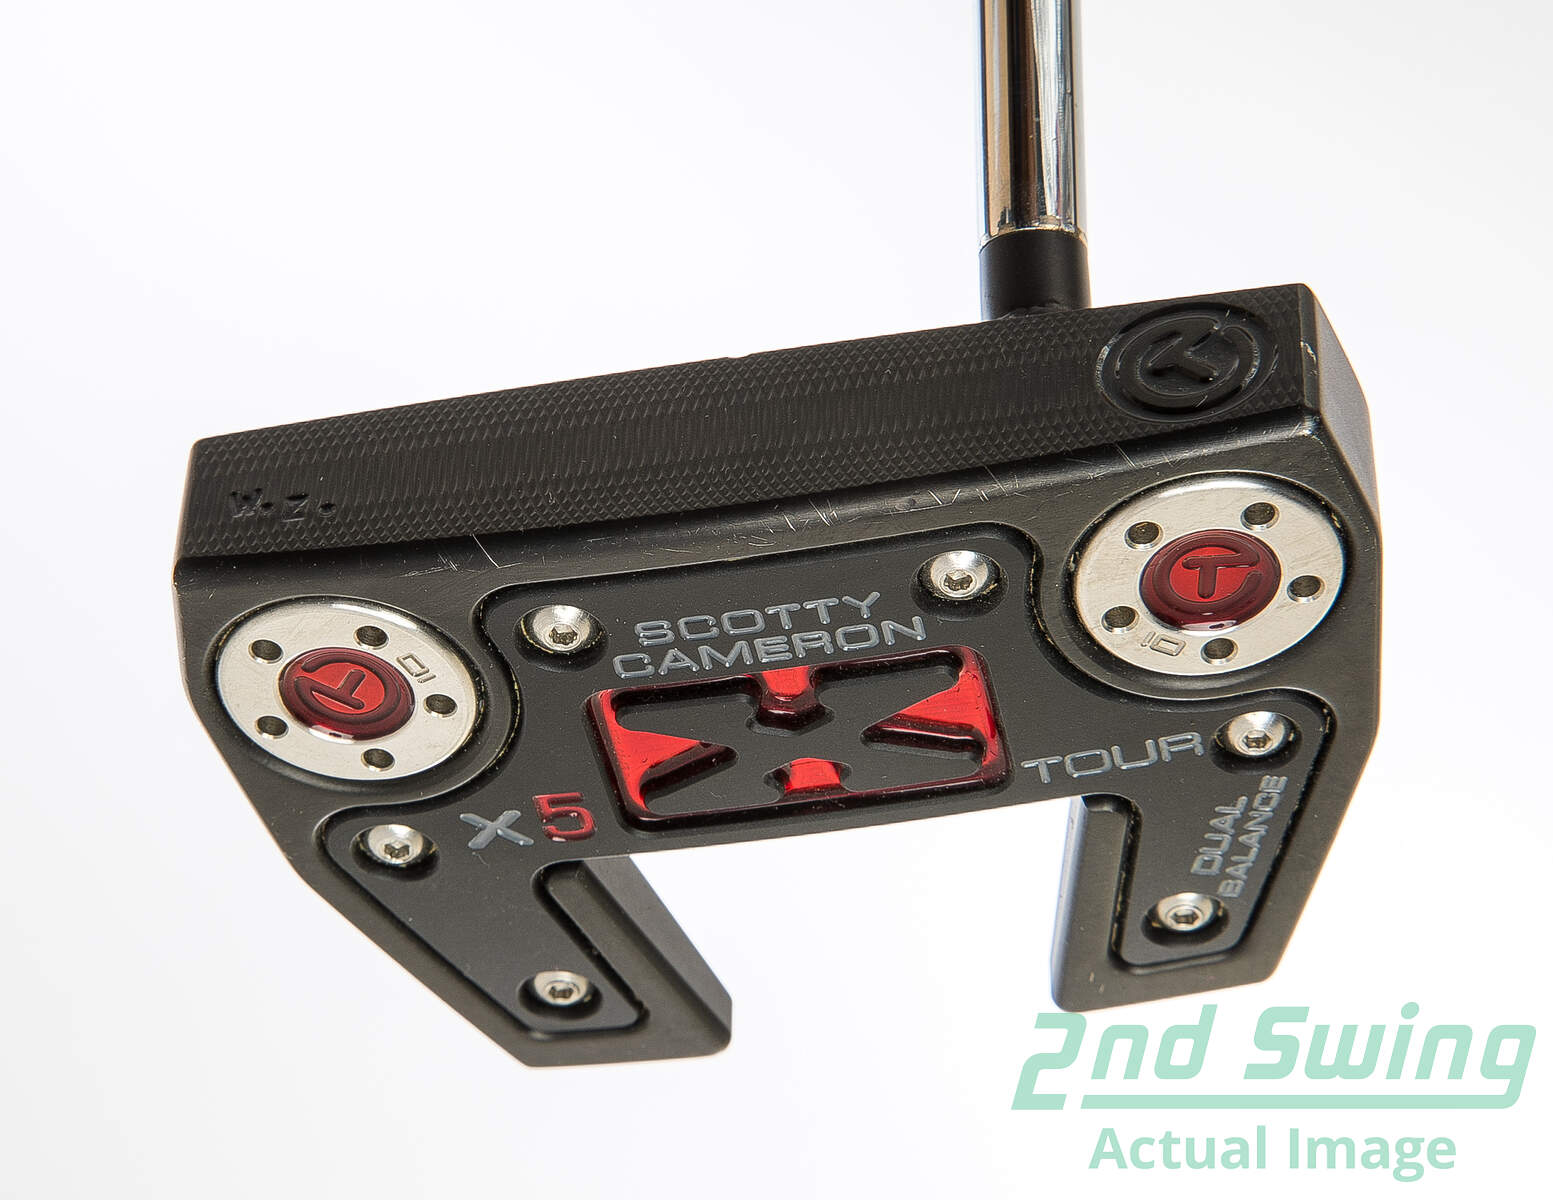 Used Titleist Scotty Cameron Circle T X5 Tour Dual Balance